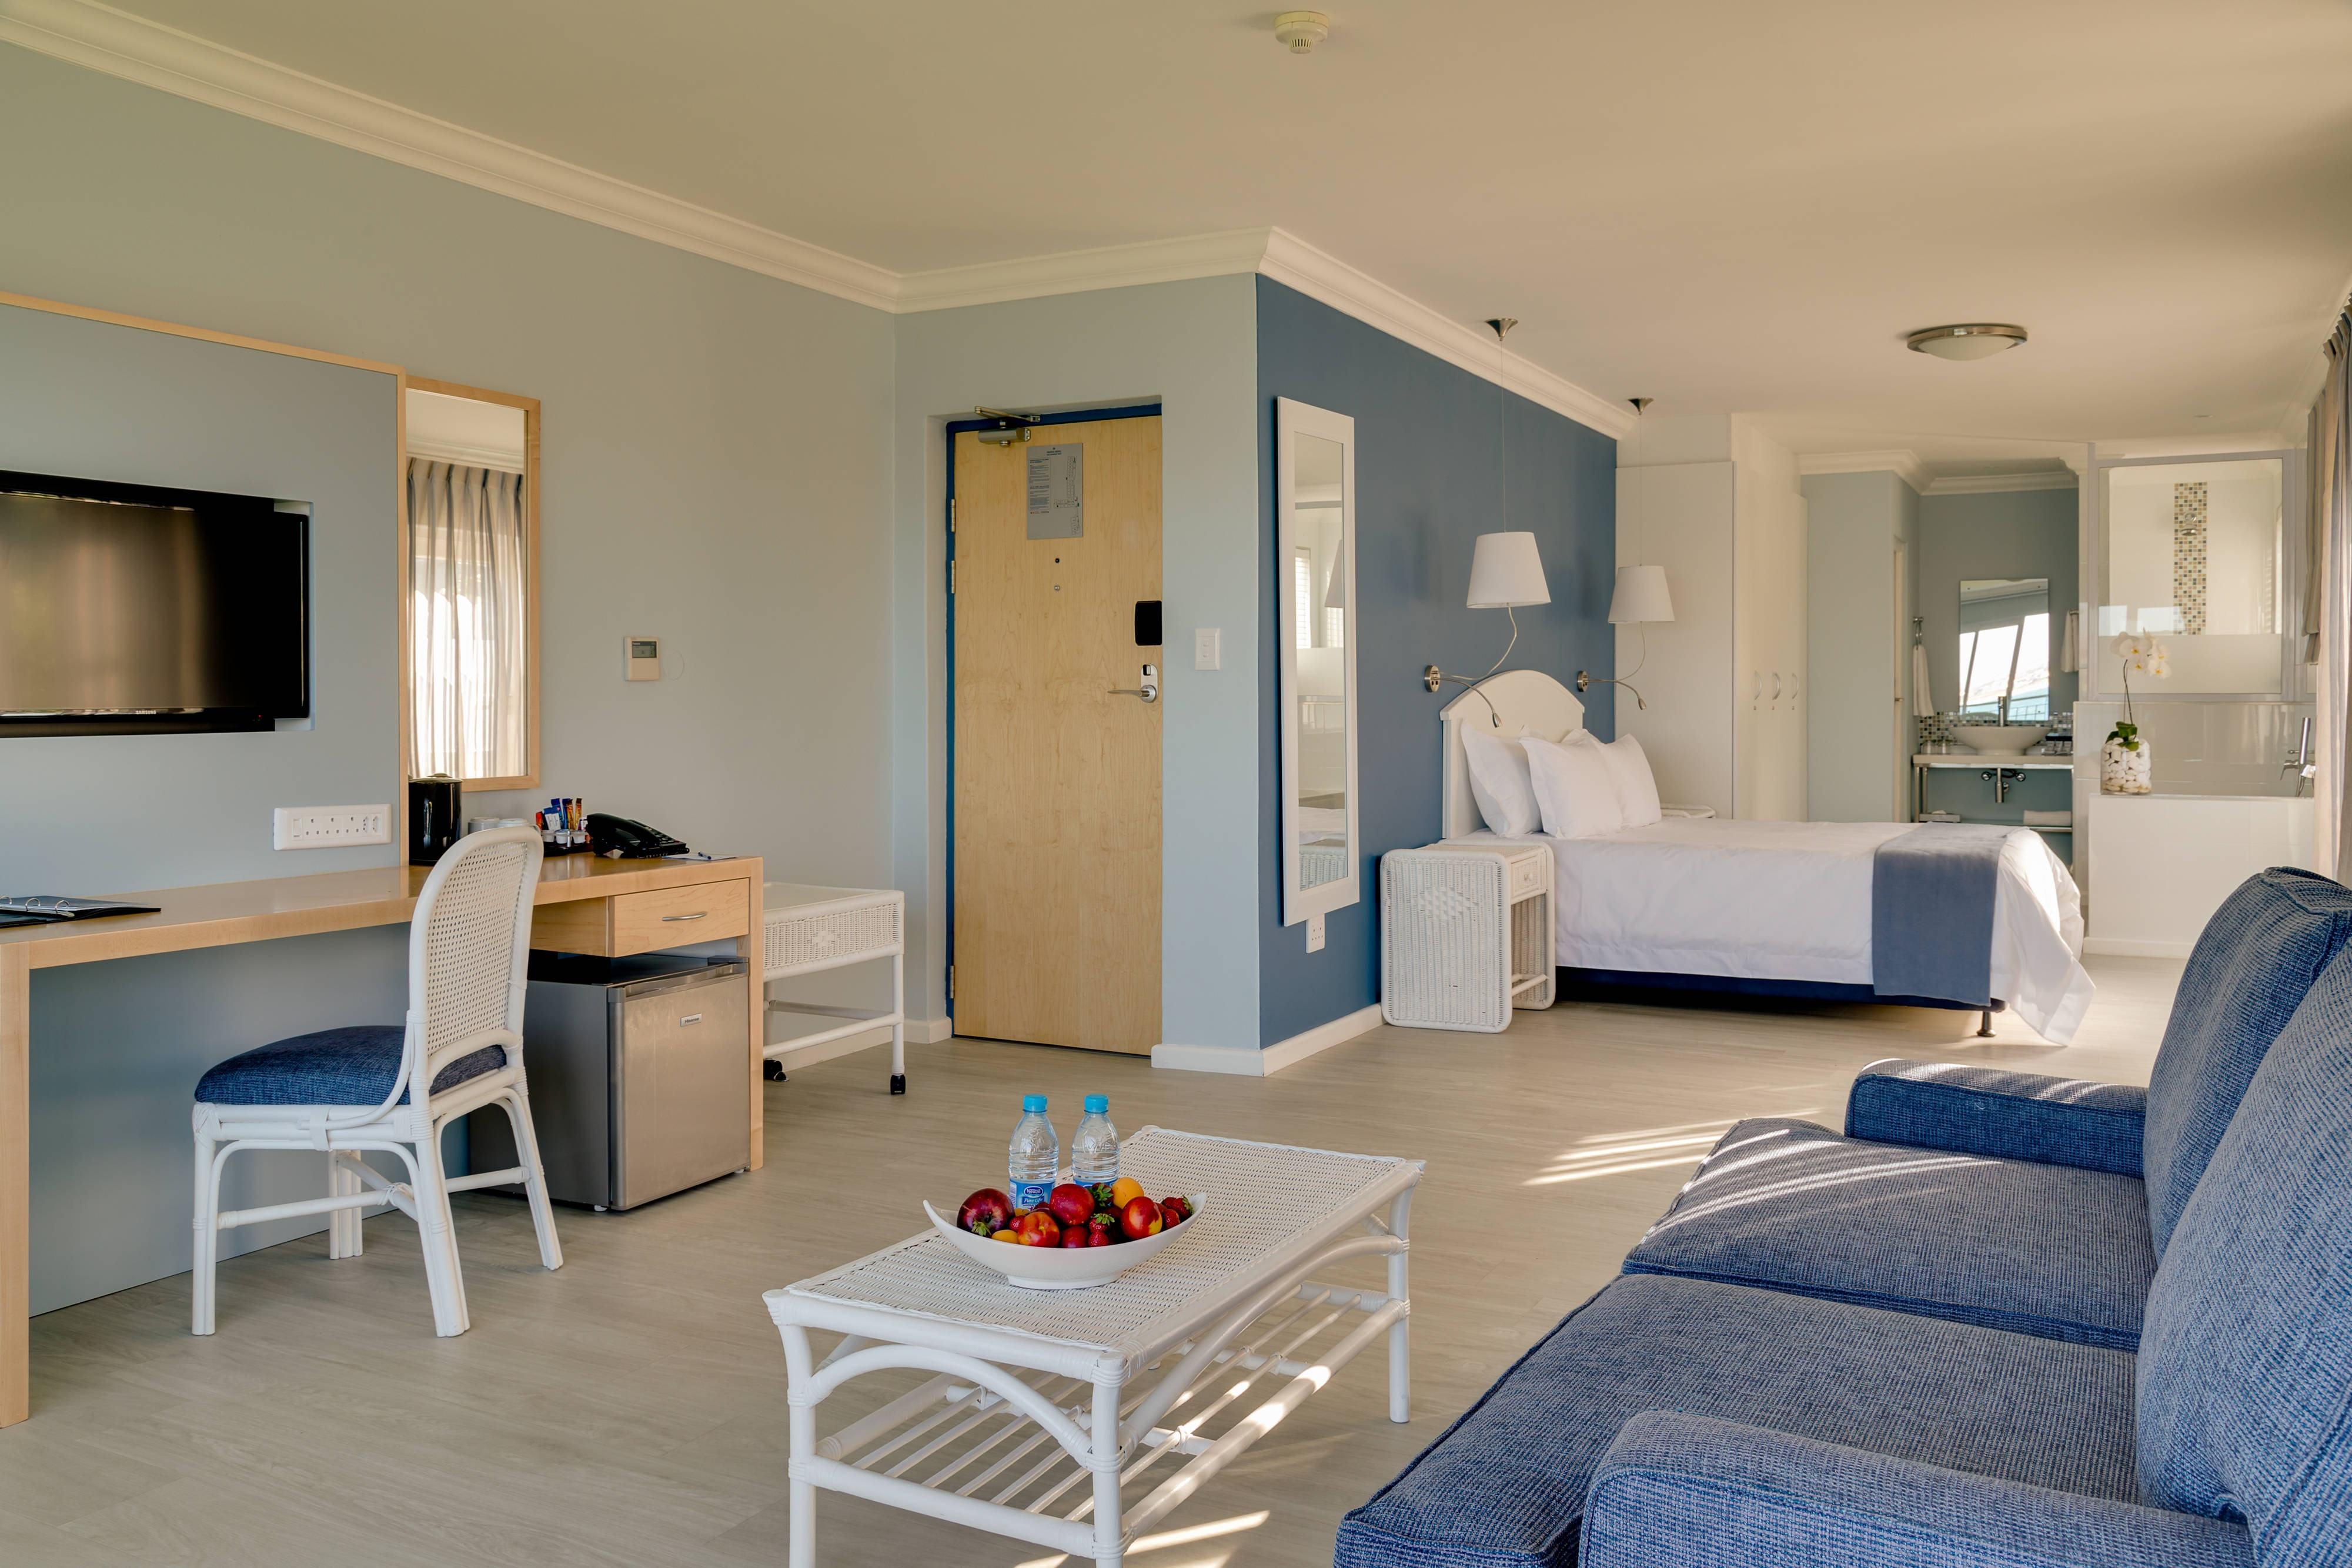 One-bedroom suite accommodation